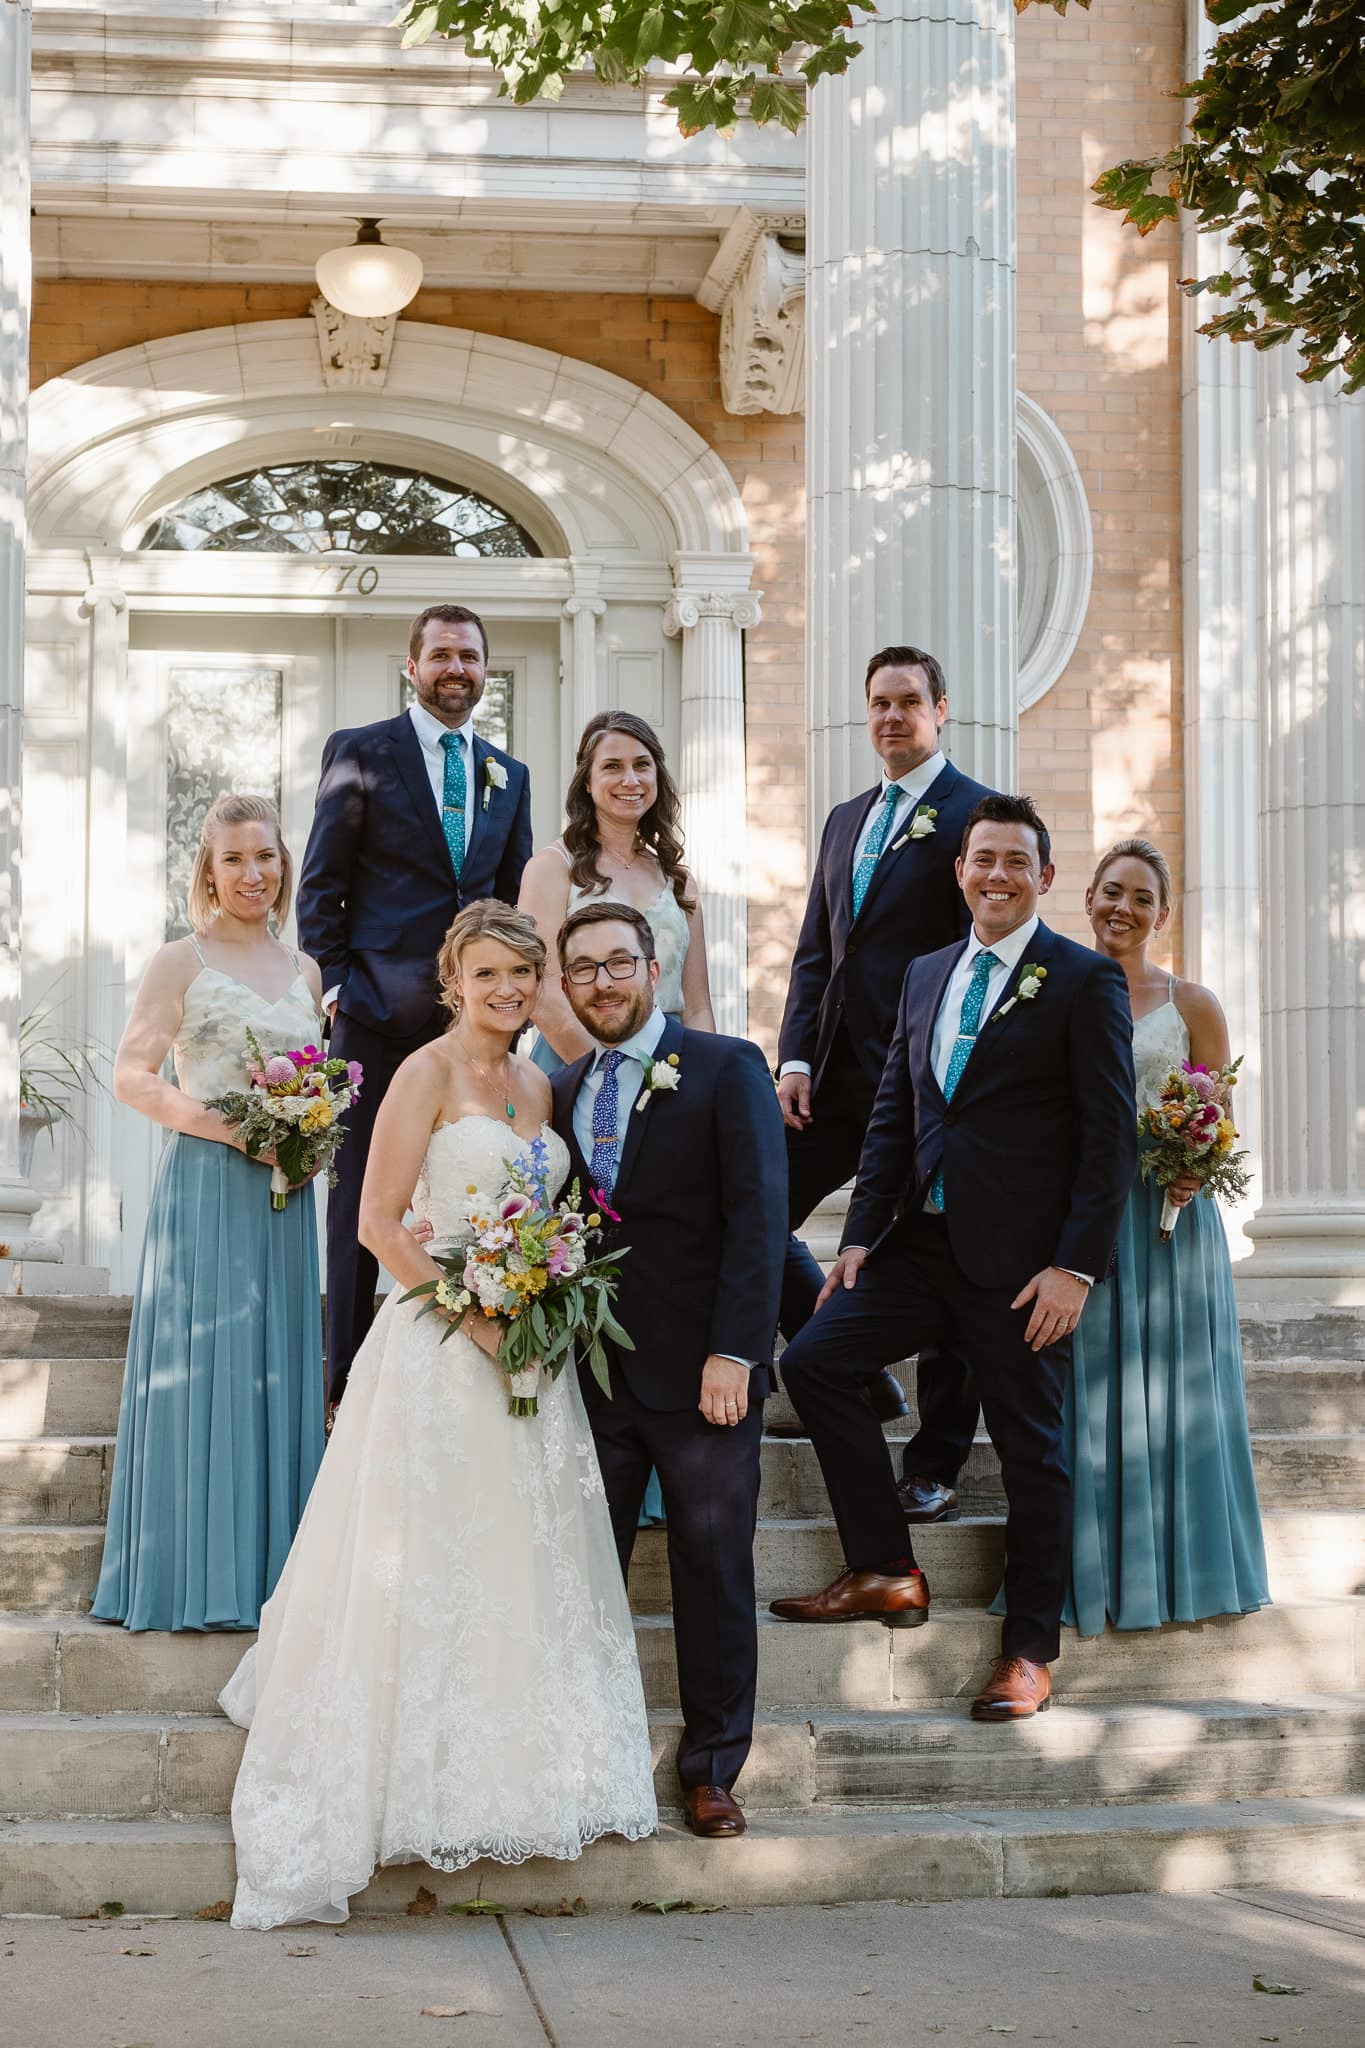 Grant Humphreys Mansion Wedding Photographer, Denver wedding photographer, Colorado wedding photographer, wedding party photos